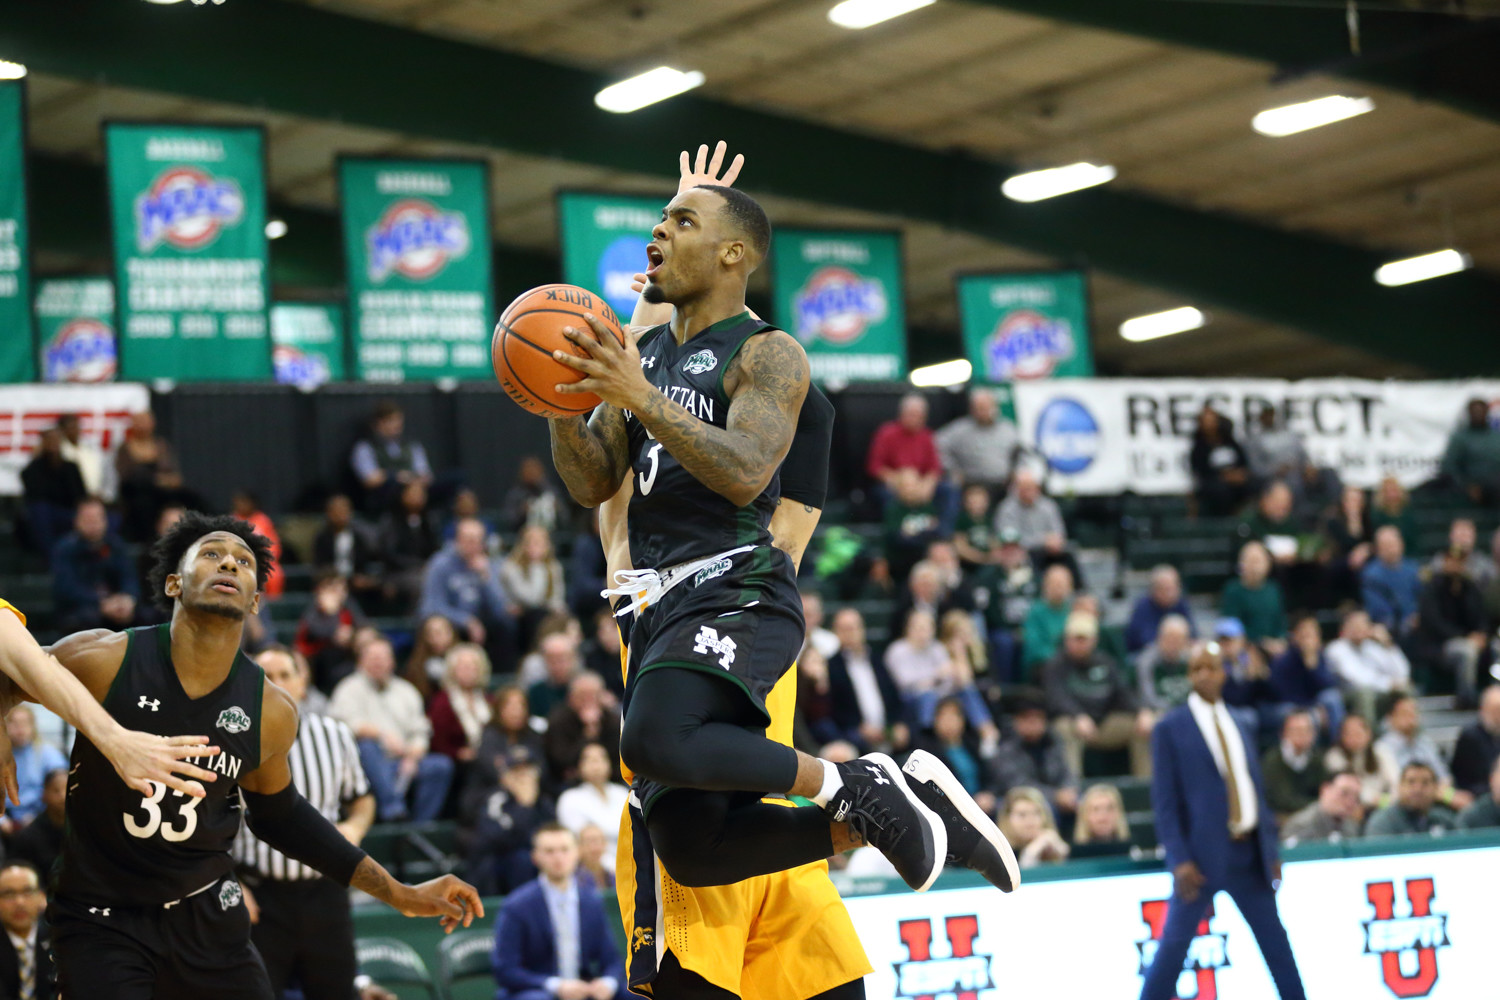 Jaspers' senior guard Zavier Turner (3), shown here against Canisius Friday night, logged a double-double with 20 points and 10 assists in Manhattan's victory over St. Peter's Sunday afternoon.